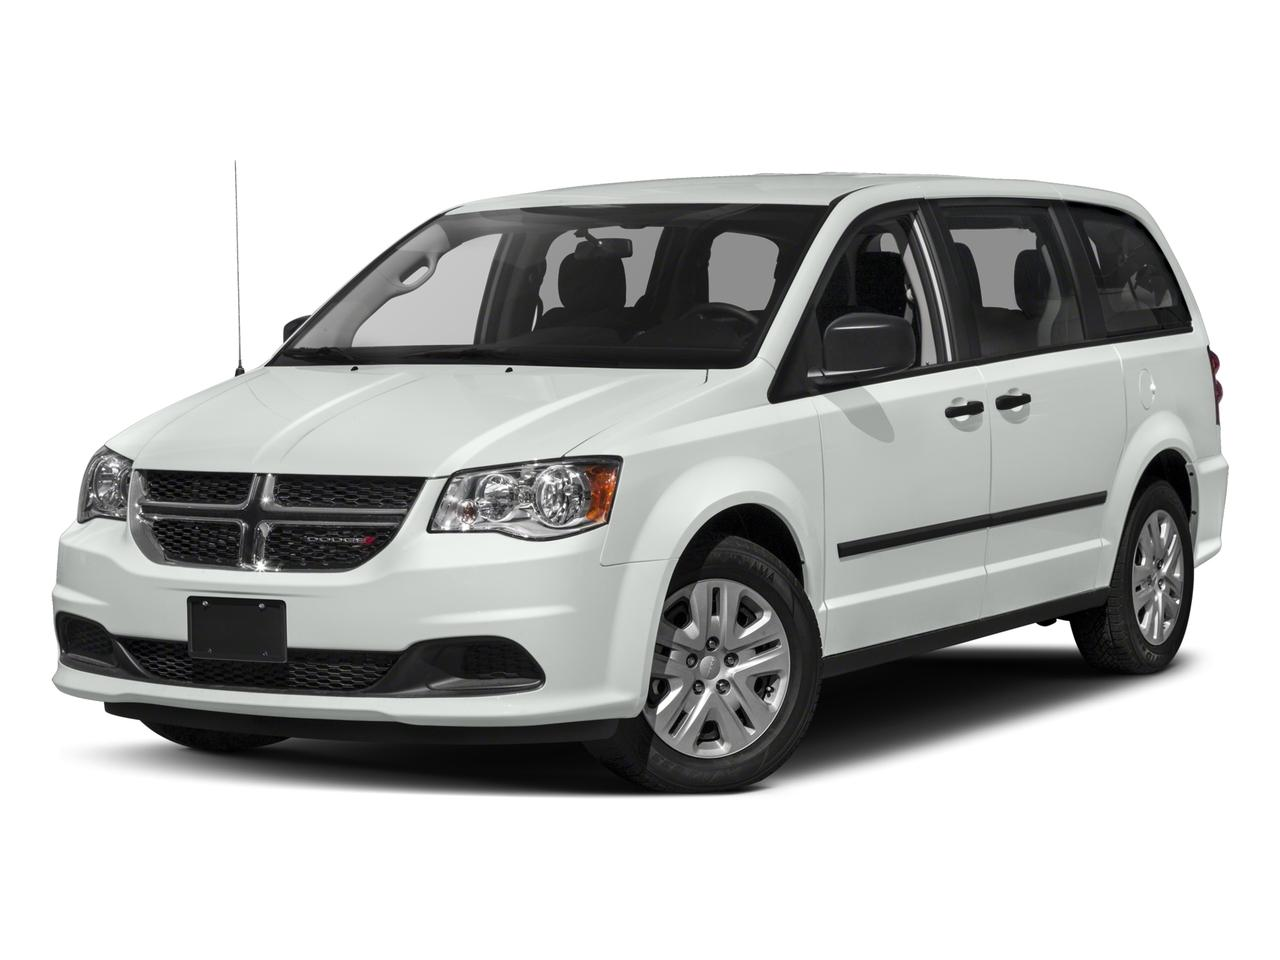 2018 Dodge Grand Caravan Vehicle Photo in Novato, CA 94945